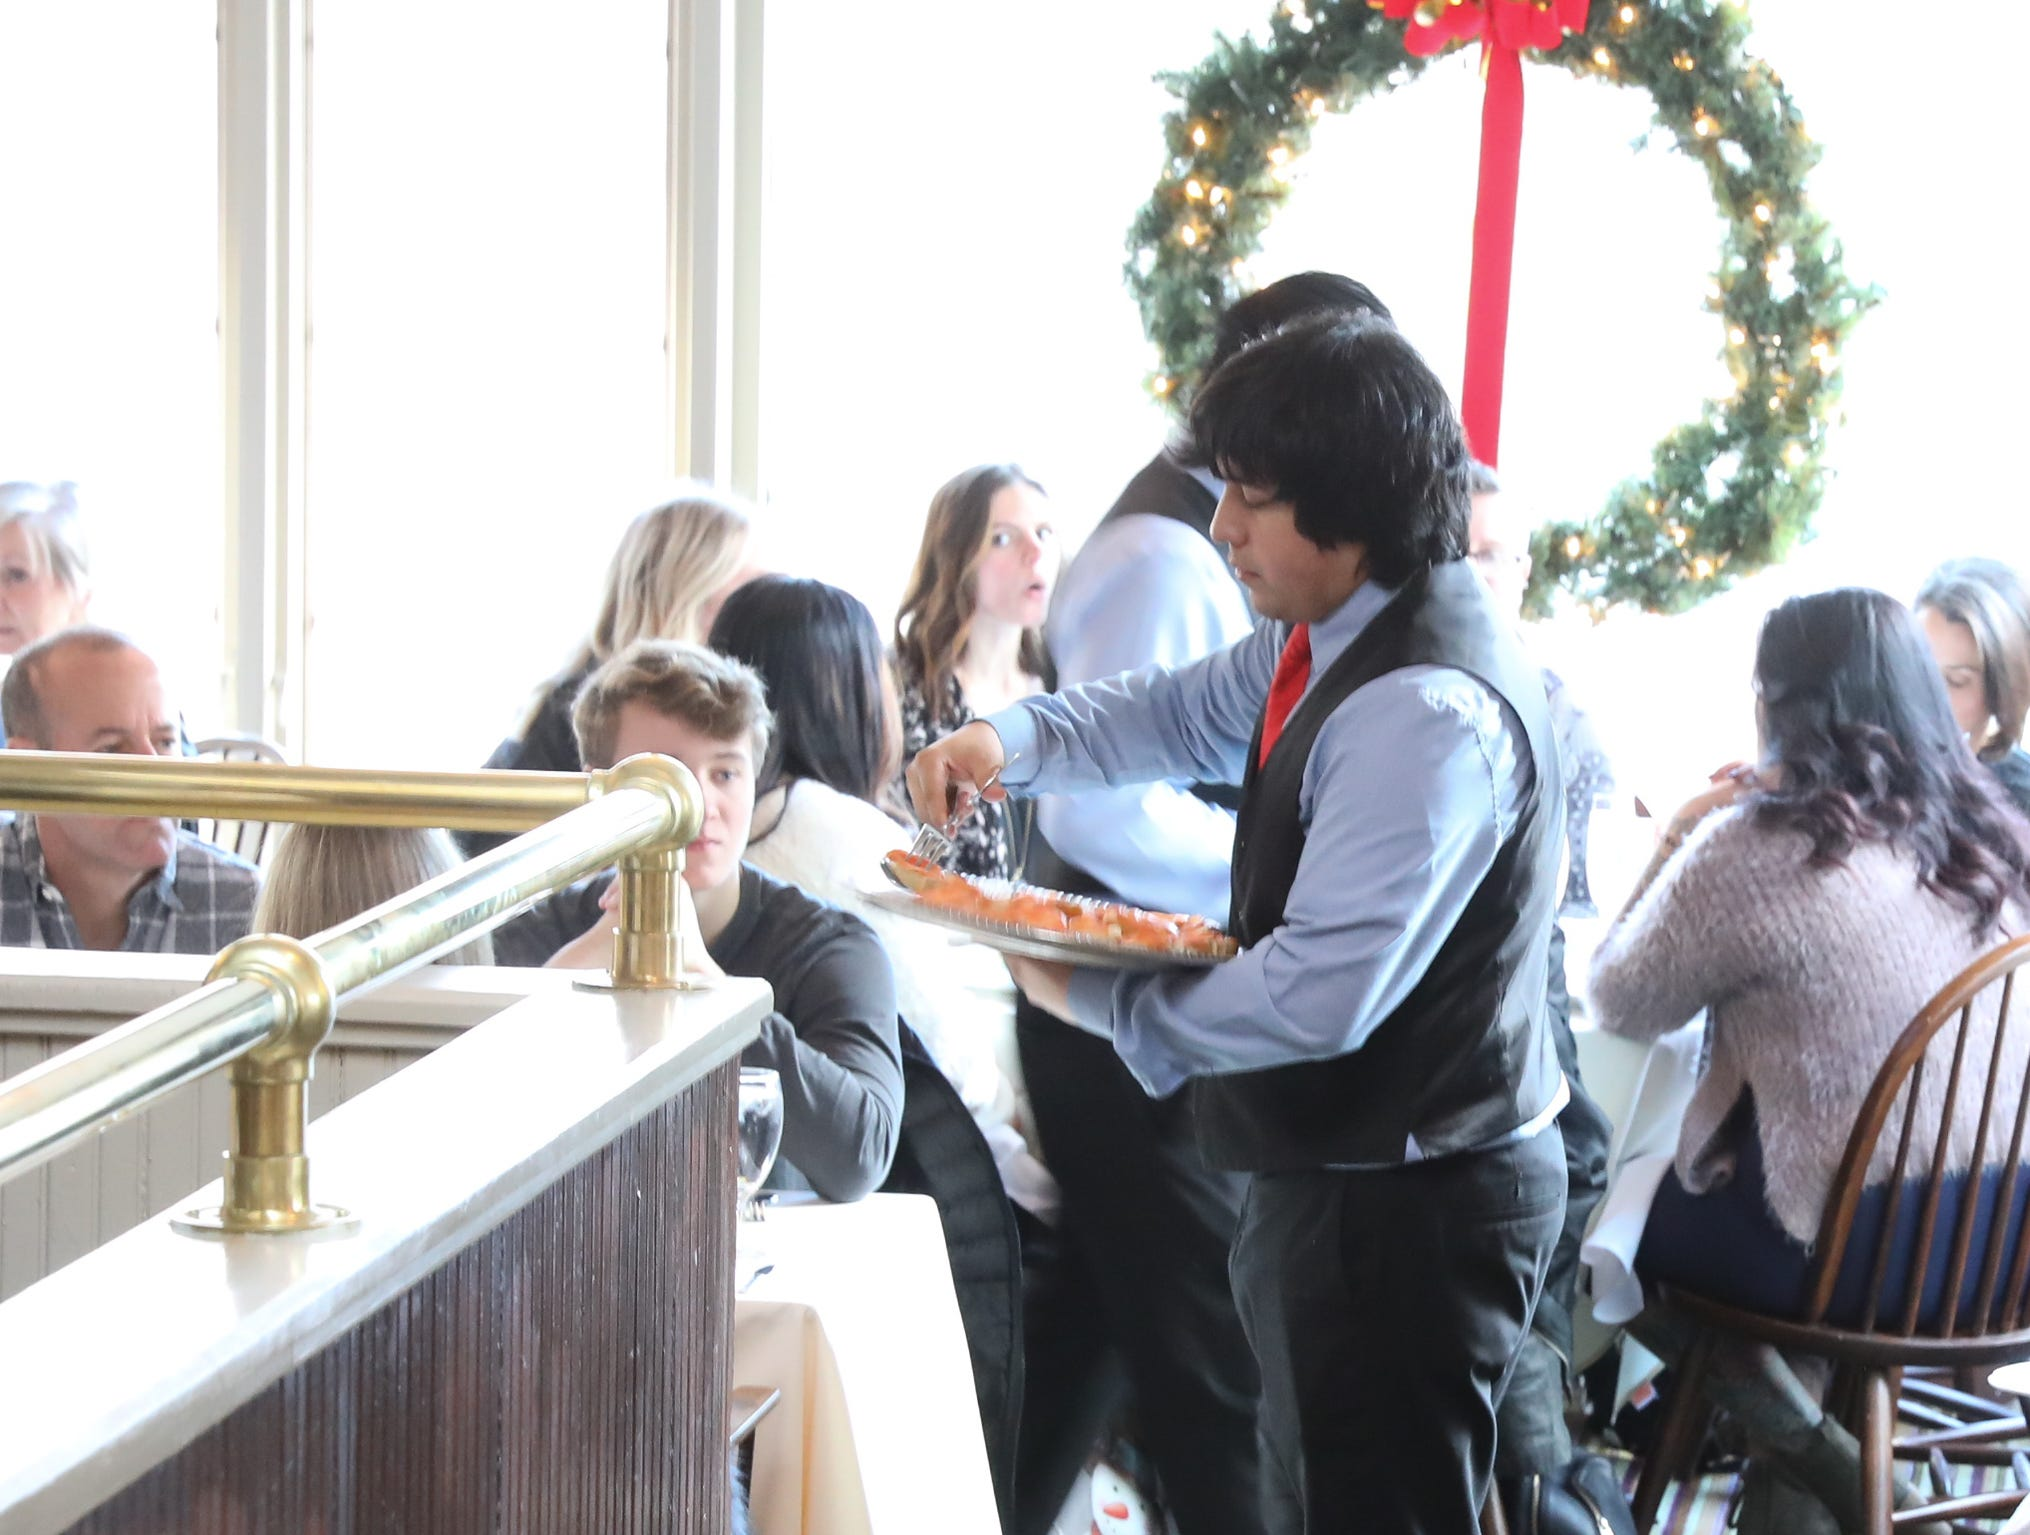 Servers deliver brunch menu items to the tables during Sunday brunch at Restaurant X in Congers on Sunday, January 6, 2019.